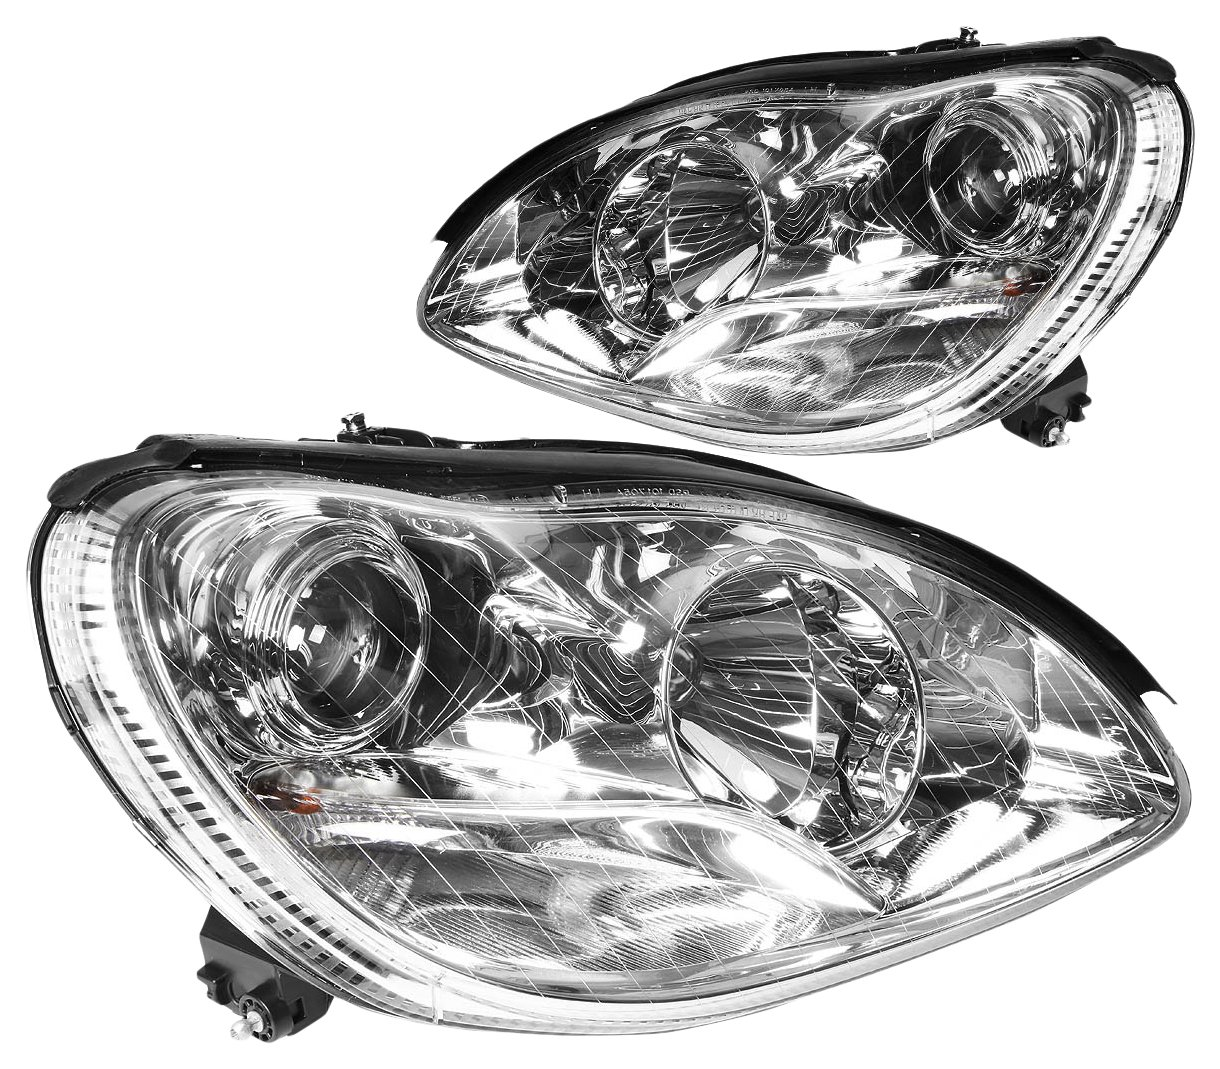 DNA Motoring HL-HPL-W22000-CH Headlight Assembly (Driver and Passenger Side),Chrome